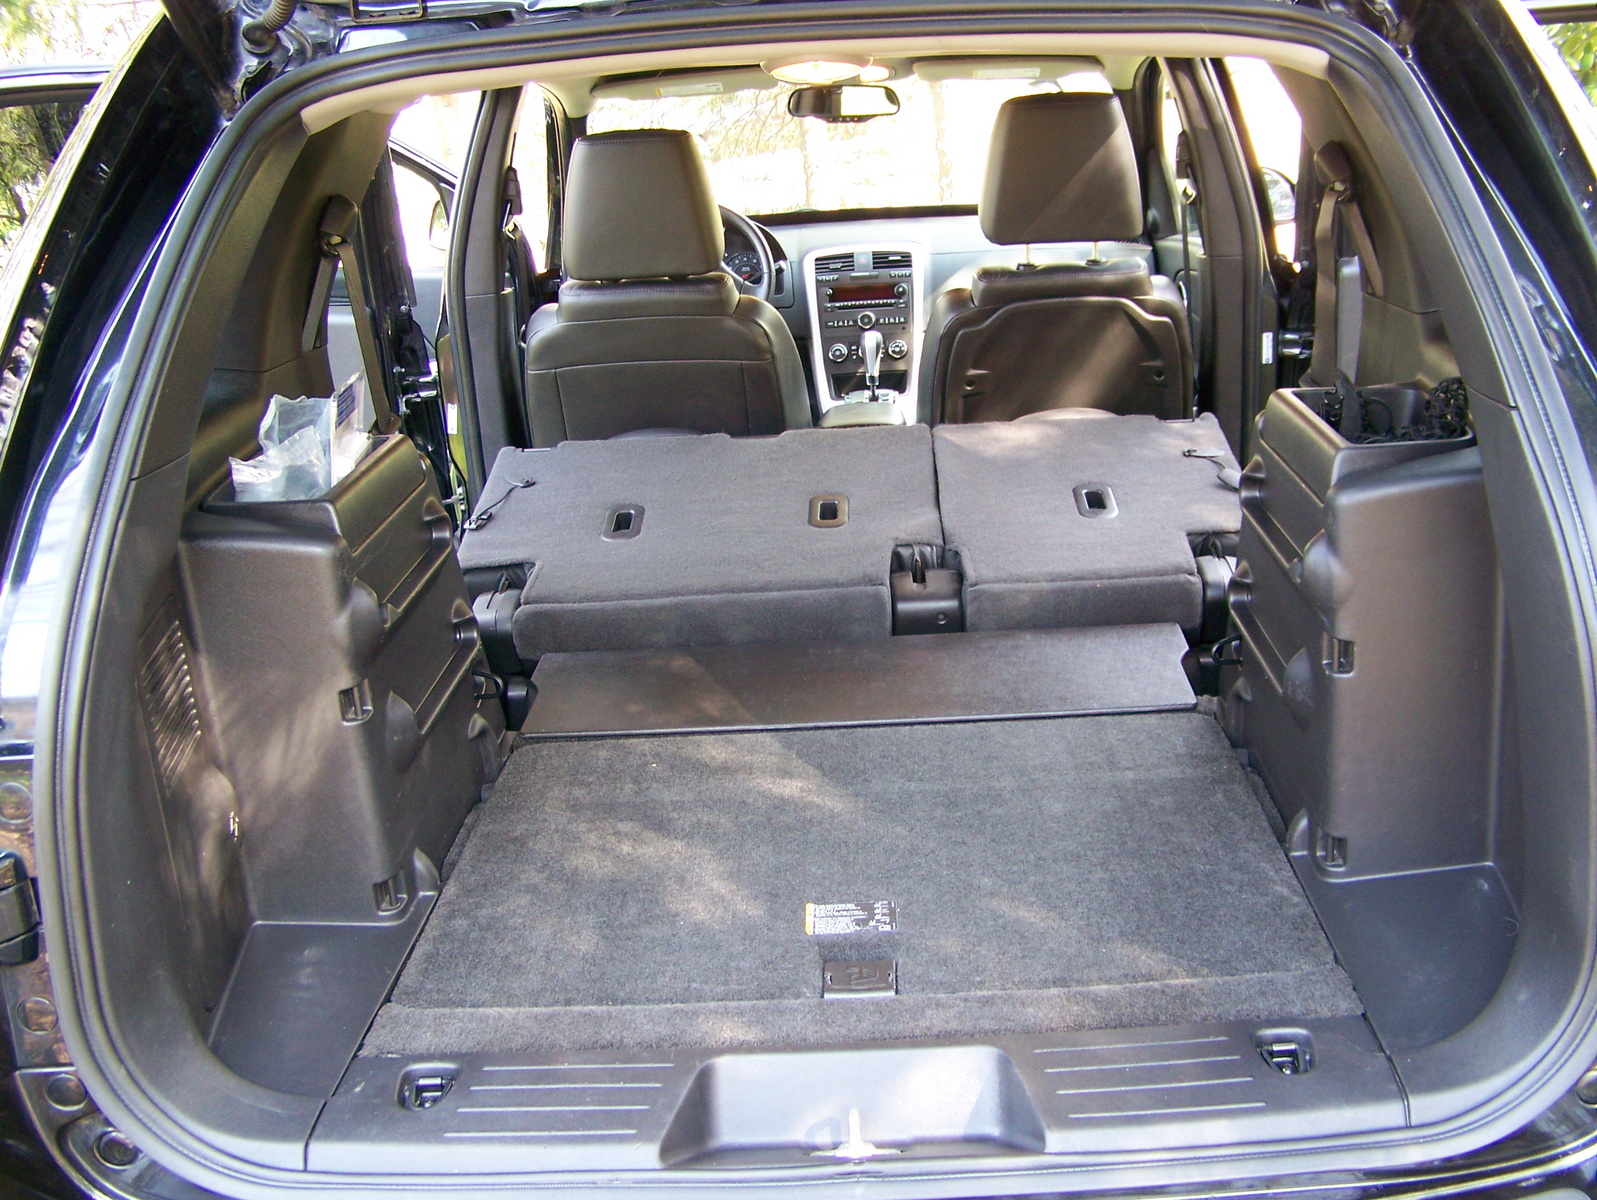 2008 pontiac torrent pictures cargurus for Inside 2007 torrent